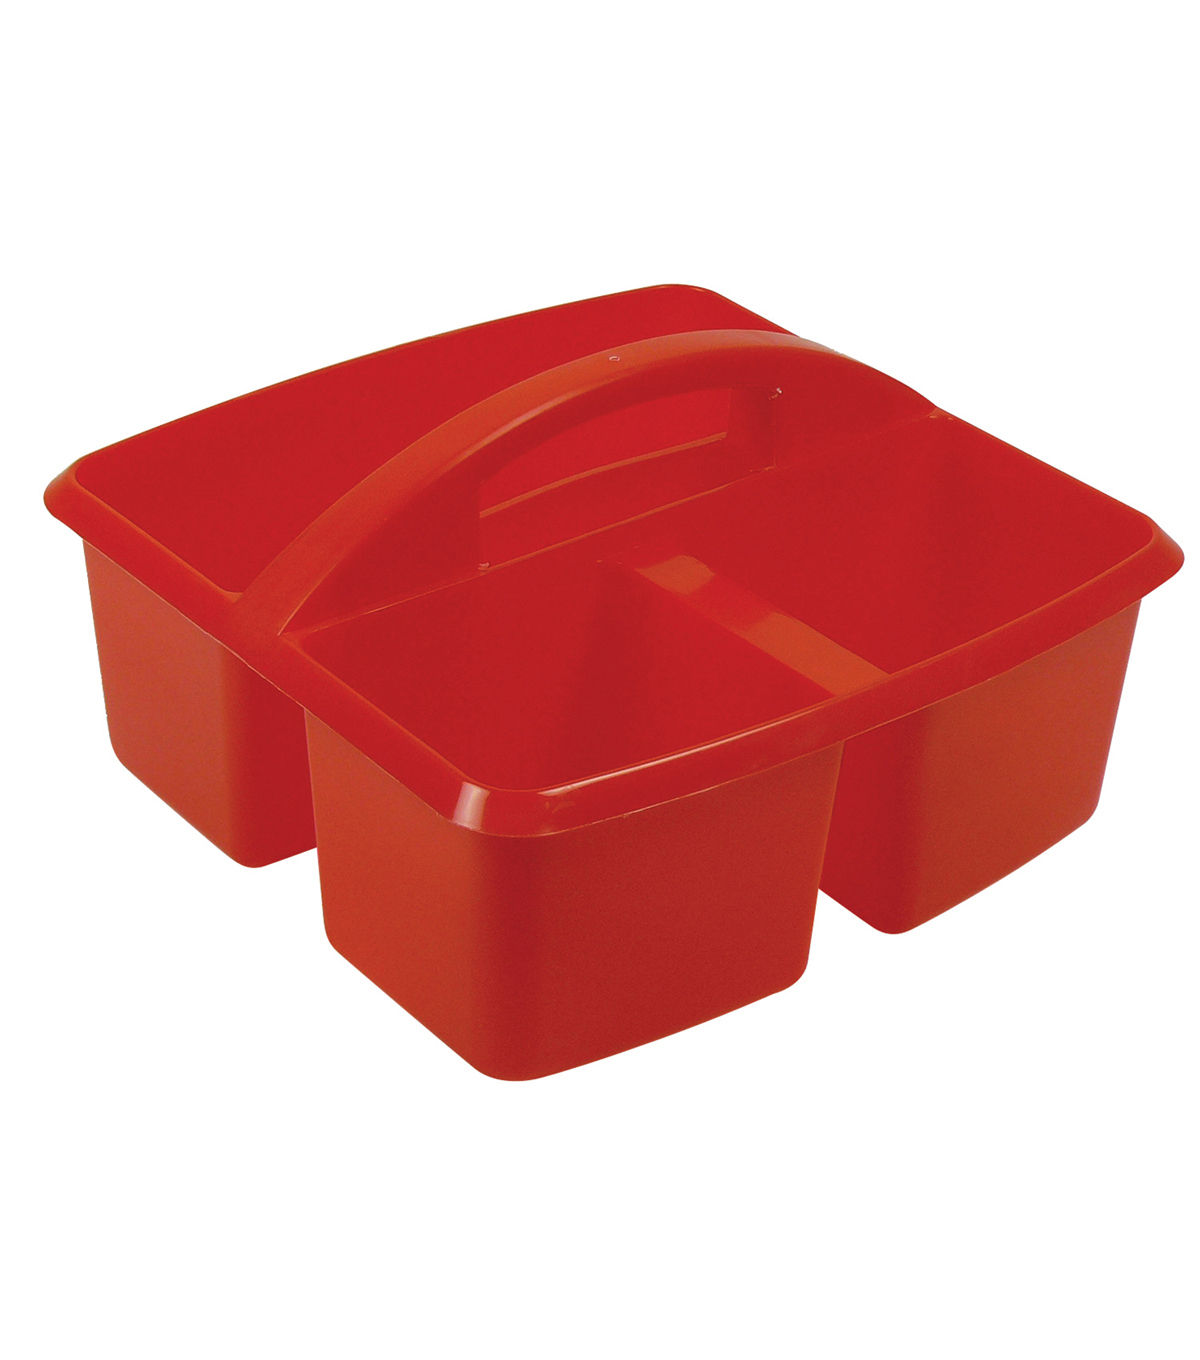 Romanoff Products Small Utility Caddy, Pack of 6, Red